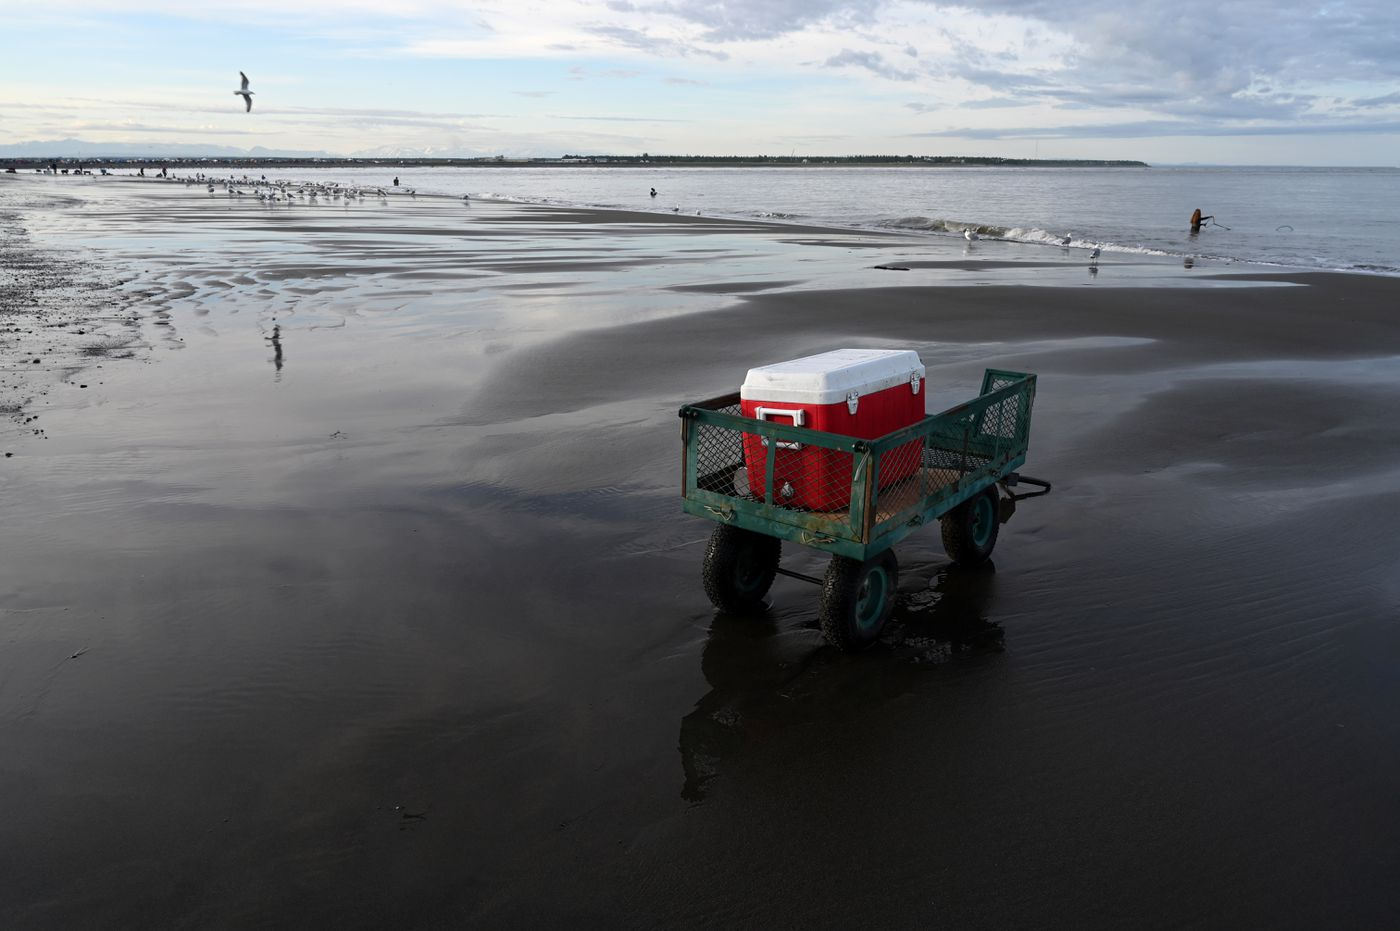 Early July 21, 2020, the beach at the Kenai River was fairly quiet. A cart and cooler wait for dipnetters to bring salmon. (Anne Raup / ADN)